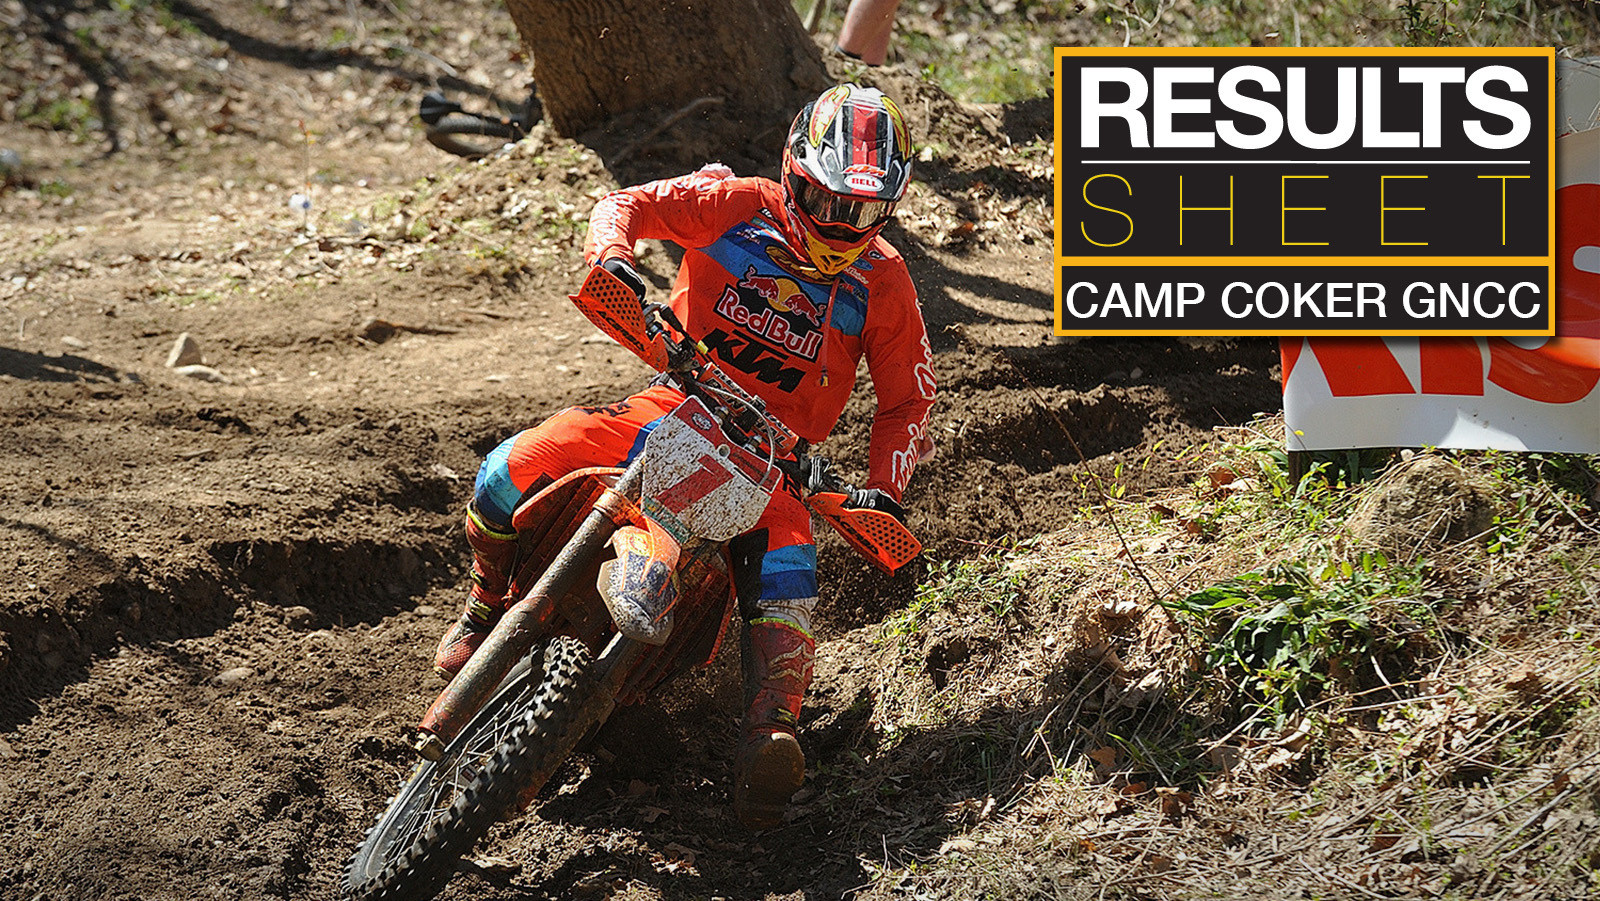 Results Sheet: Camp Coker GNCC